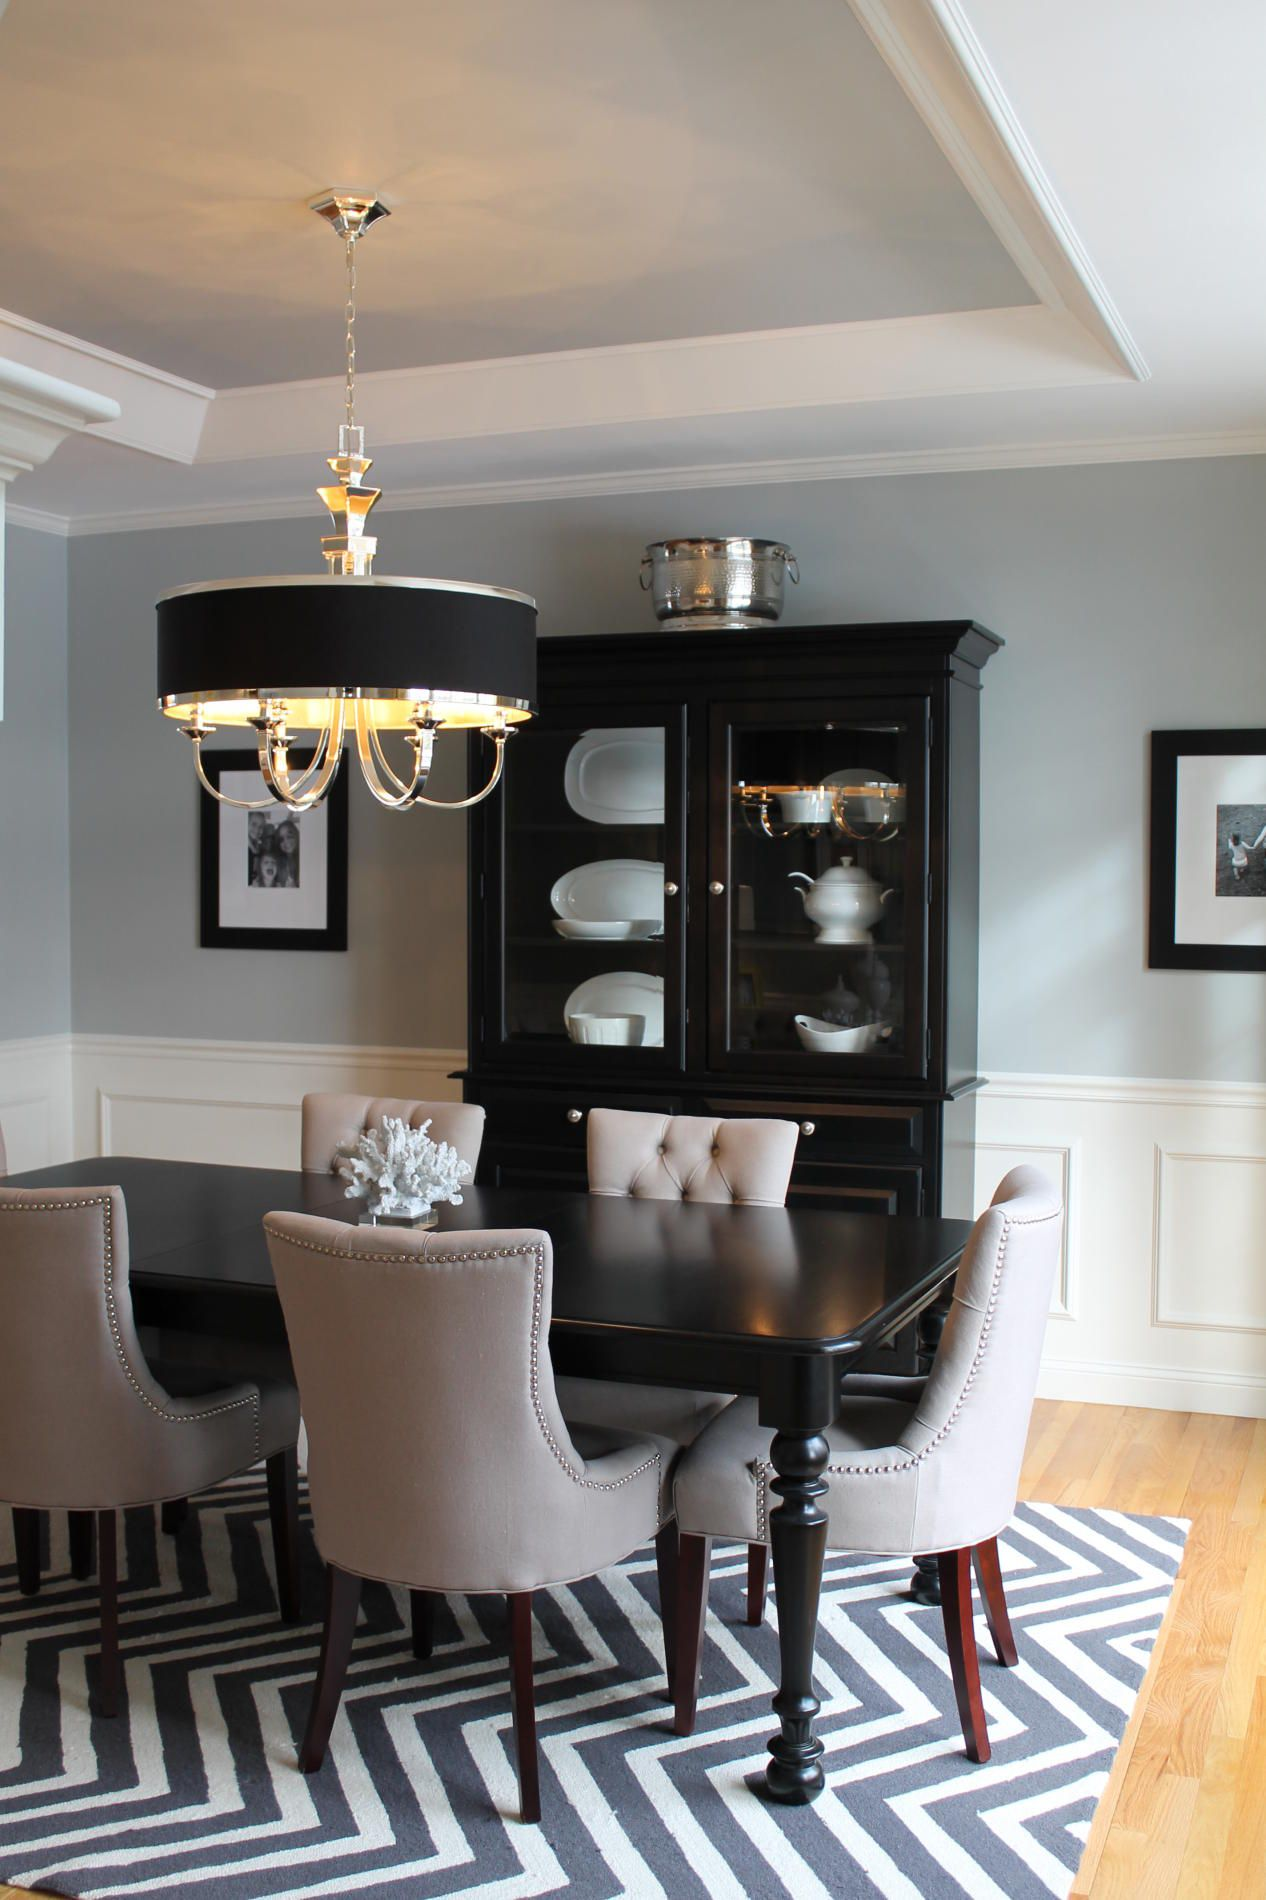 Pale Blue Dining Room Walls And Ceiling With White Wainscoting